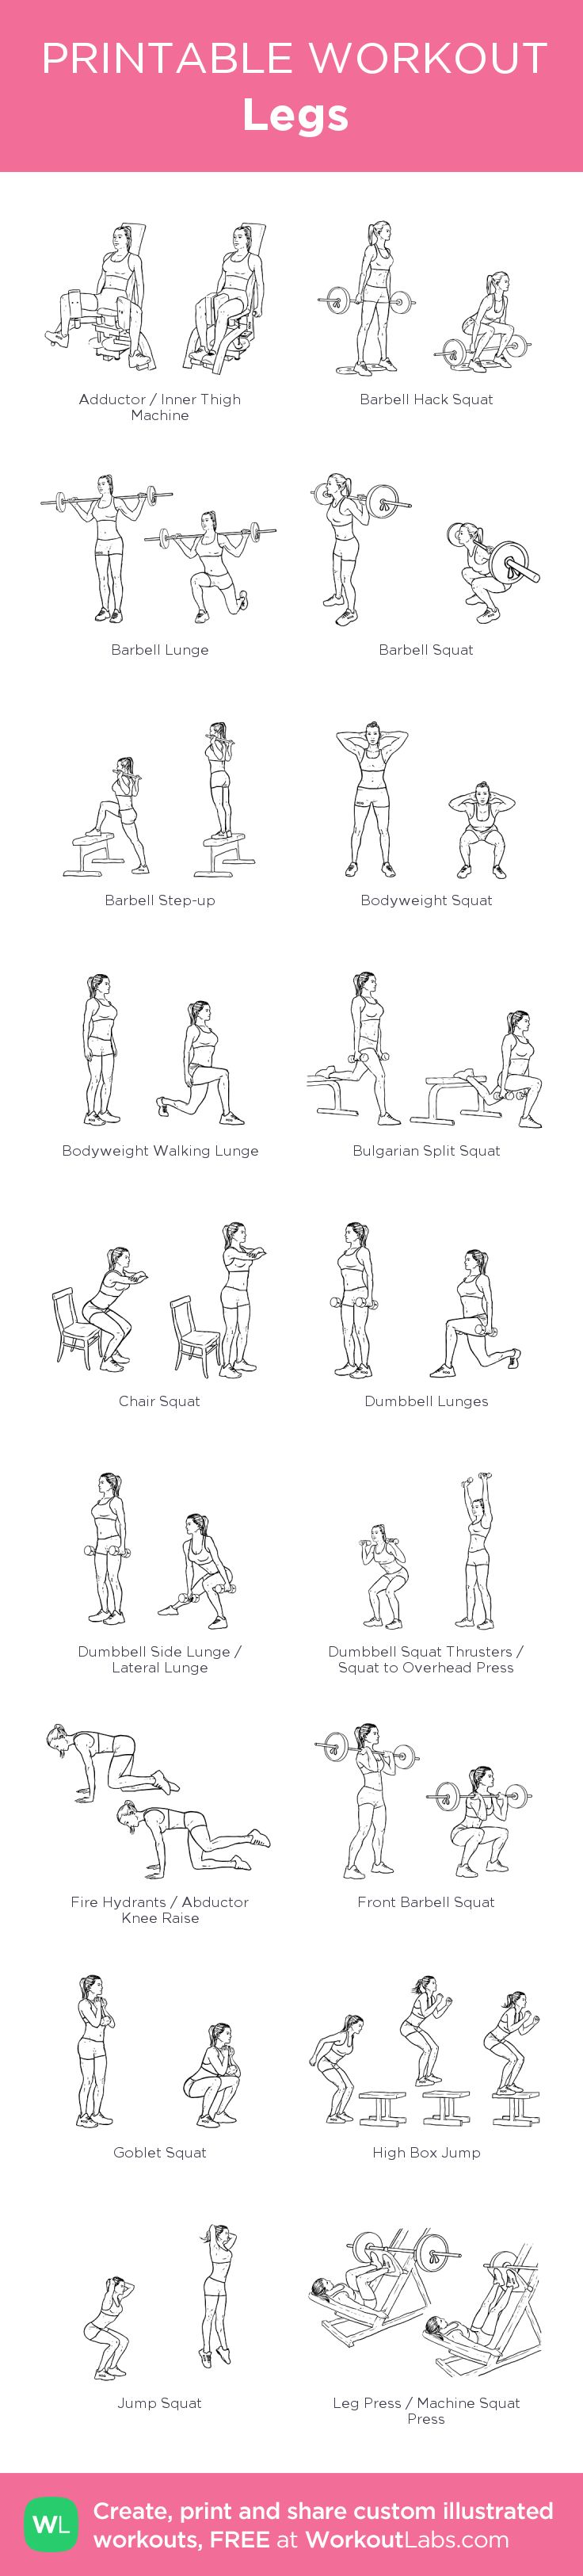 6170 best Workouts images on Pinterest